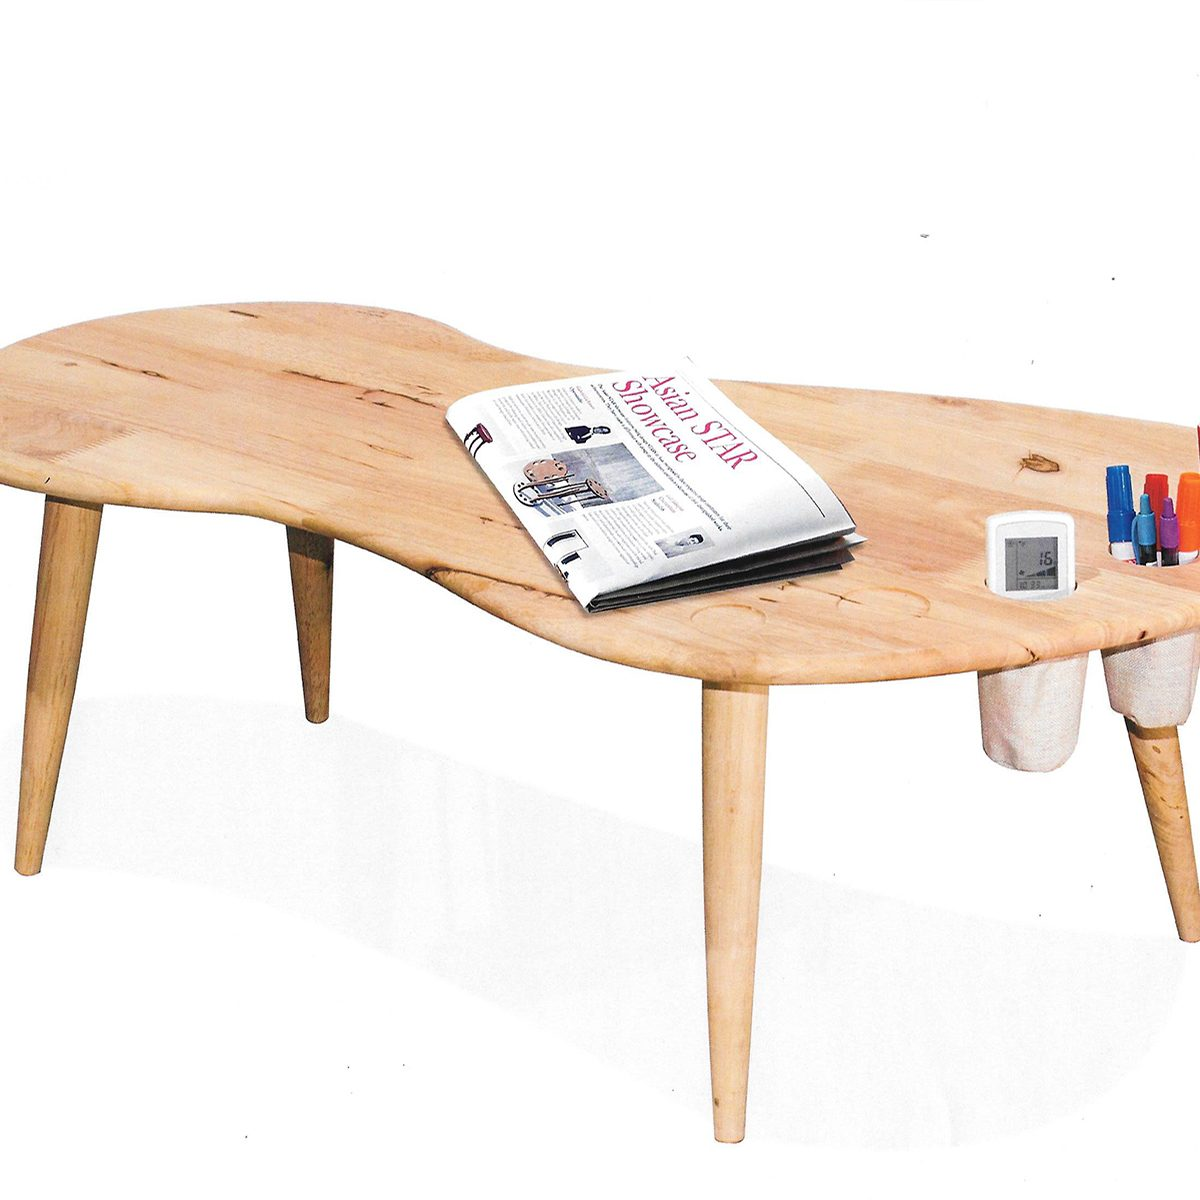 KPSB Big Foot Coffee Table